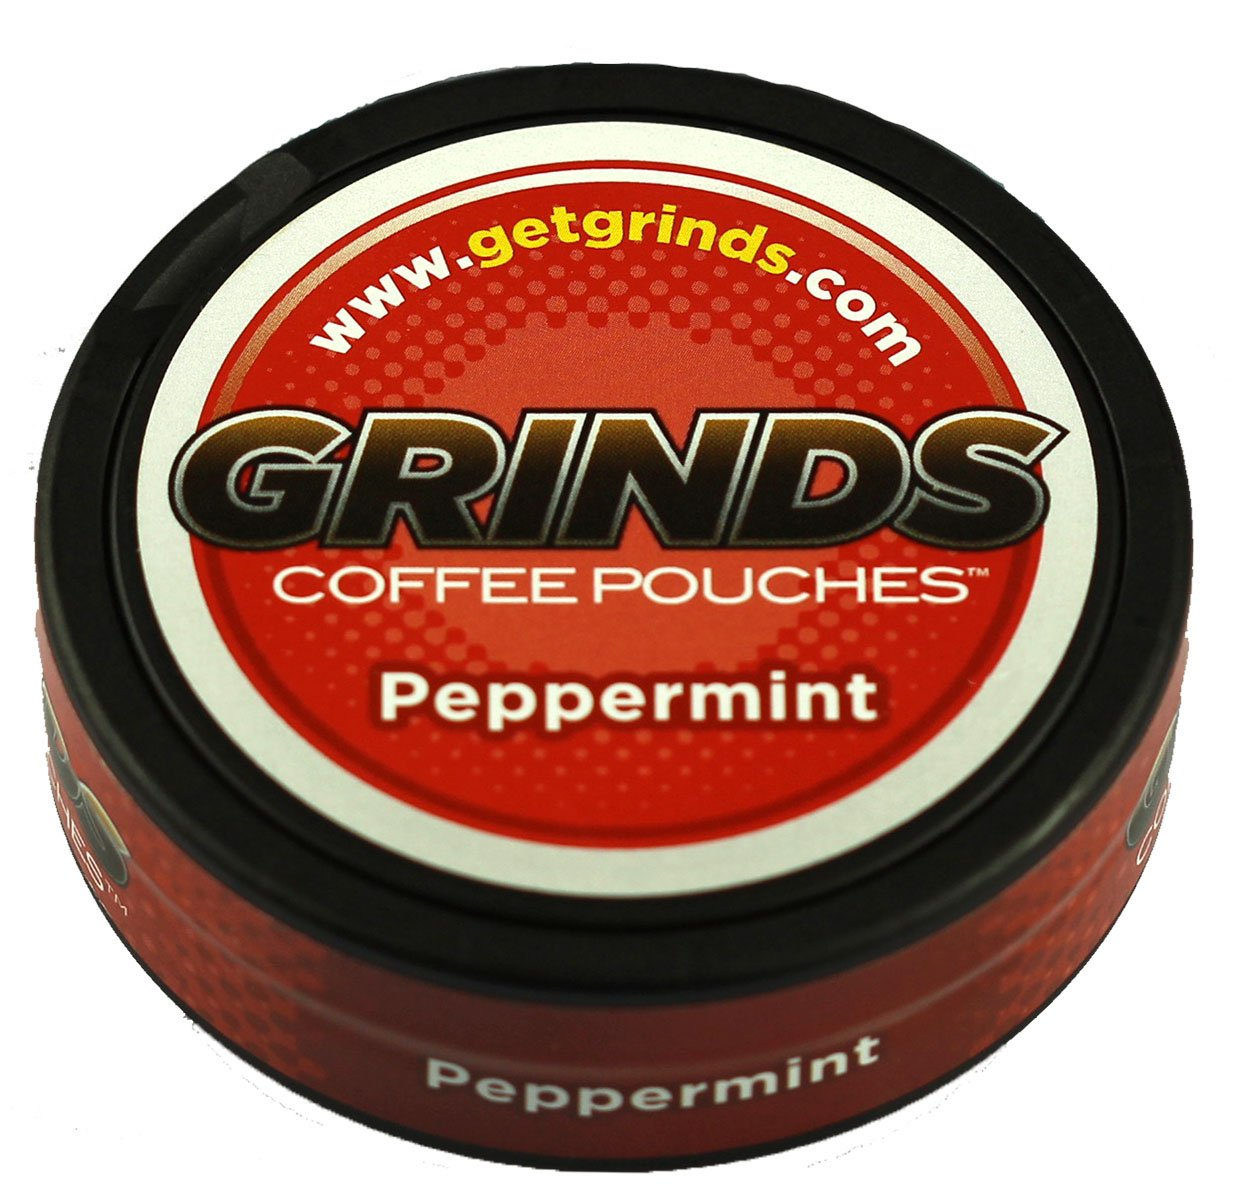 Peppermint Grinds Coffee Pouches